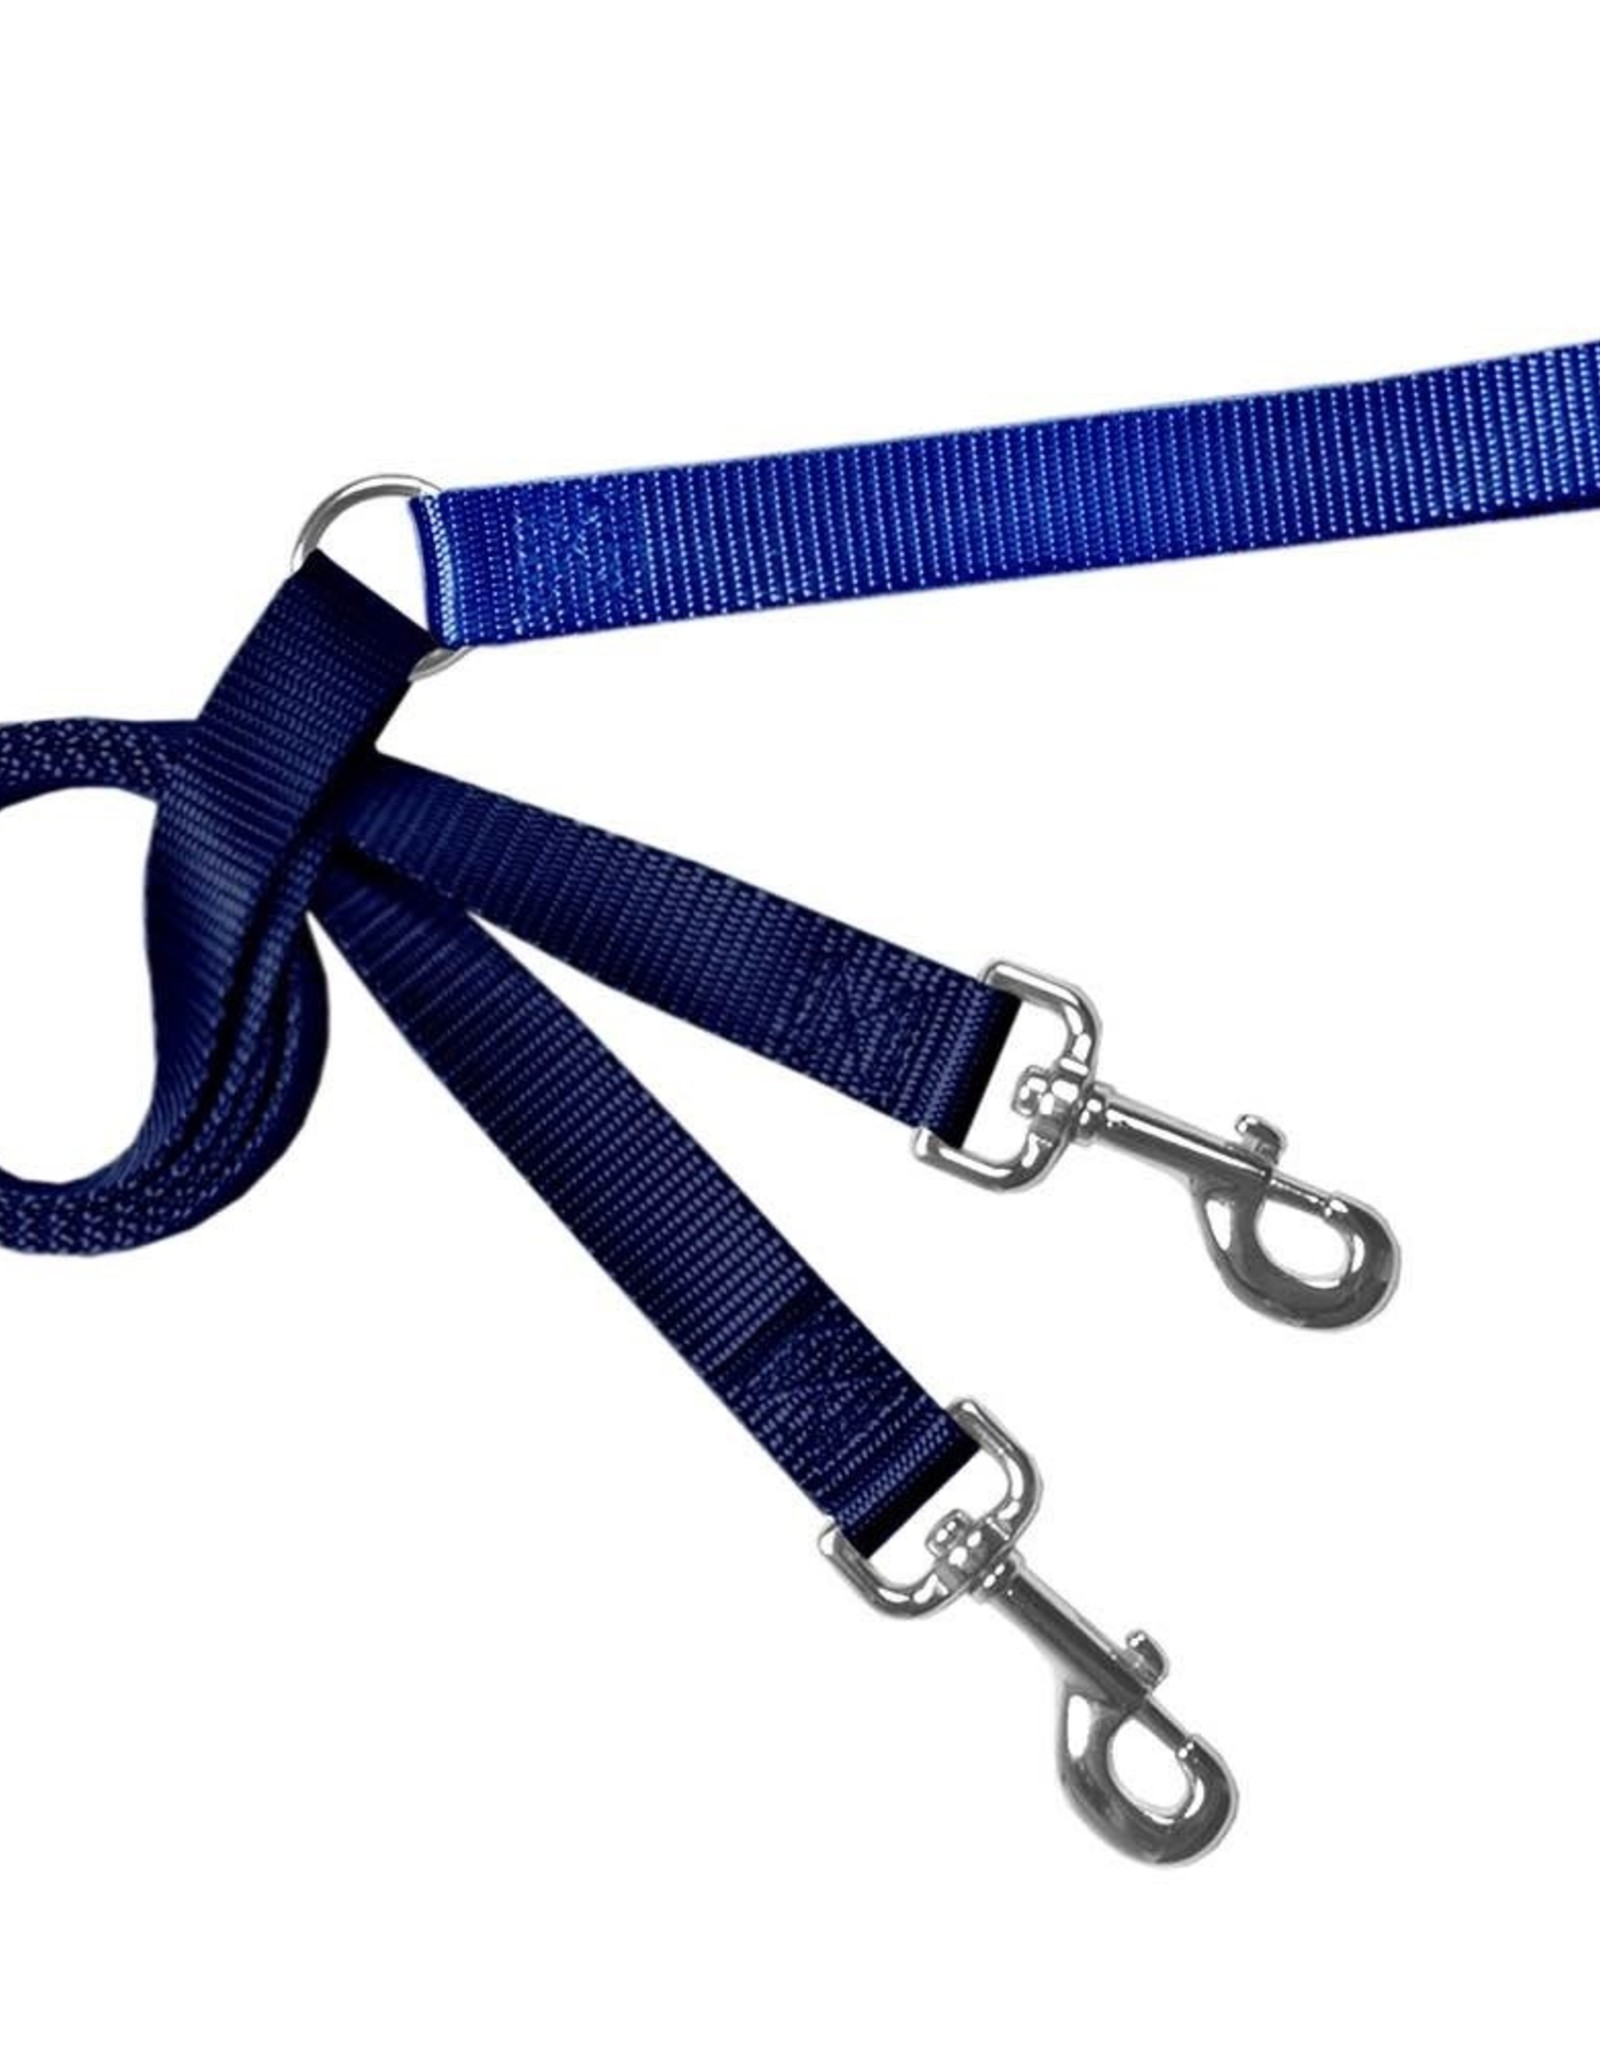 "2 Hounds Design 1"" Freedom Harness and Leash - Navy"